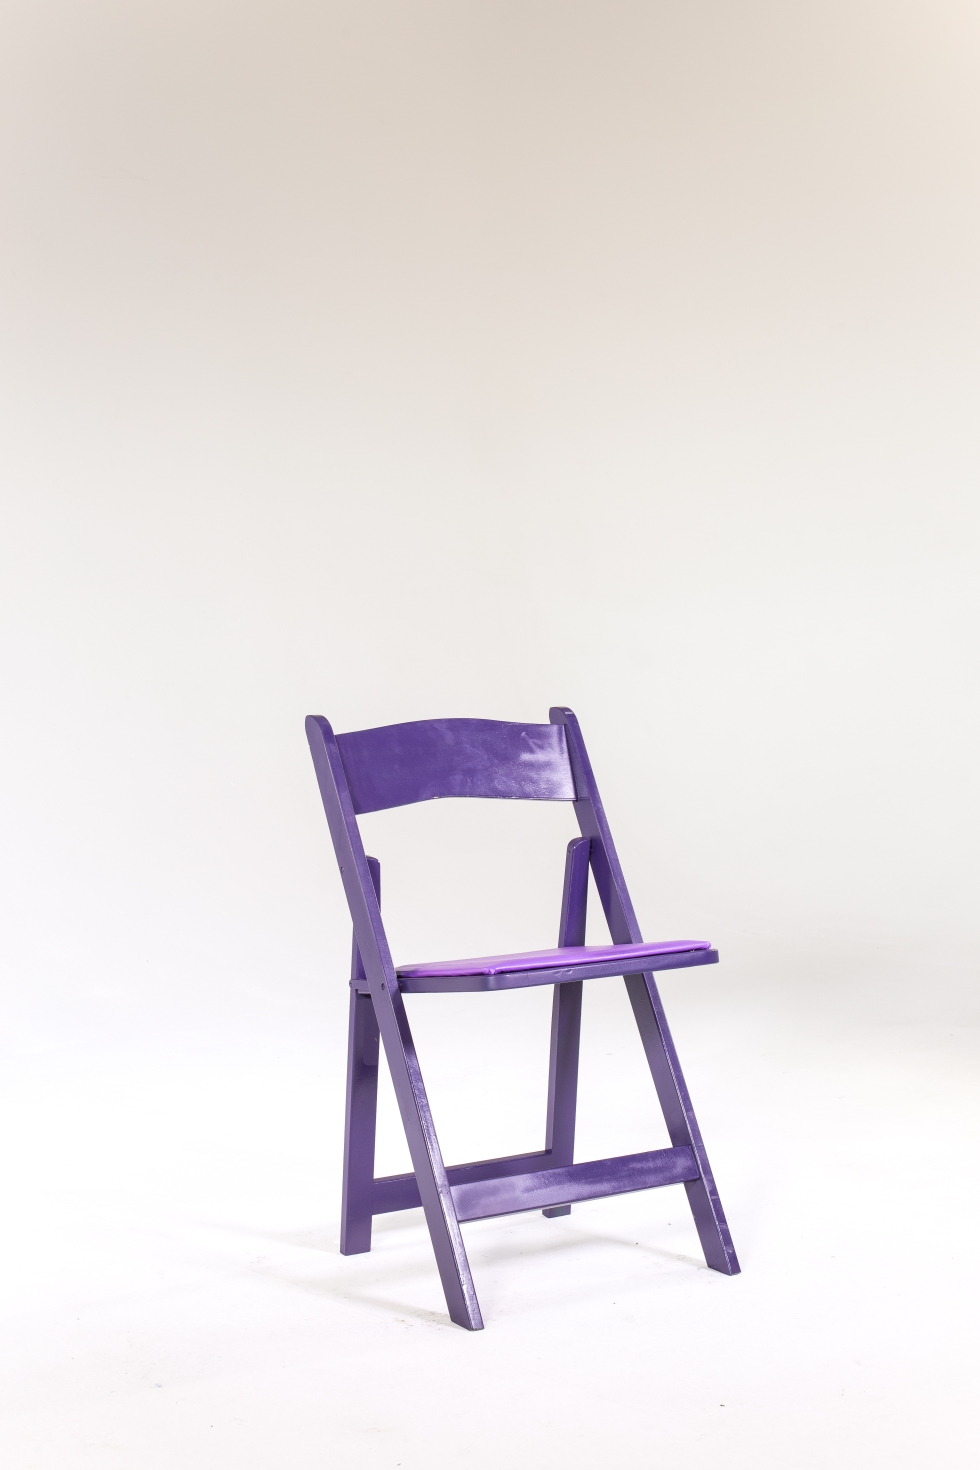 Signature Party Rentals PURPLE WOOD FOLDING CHAIR inside Rentals